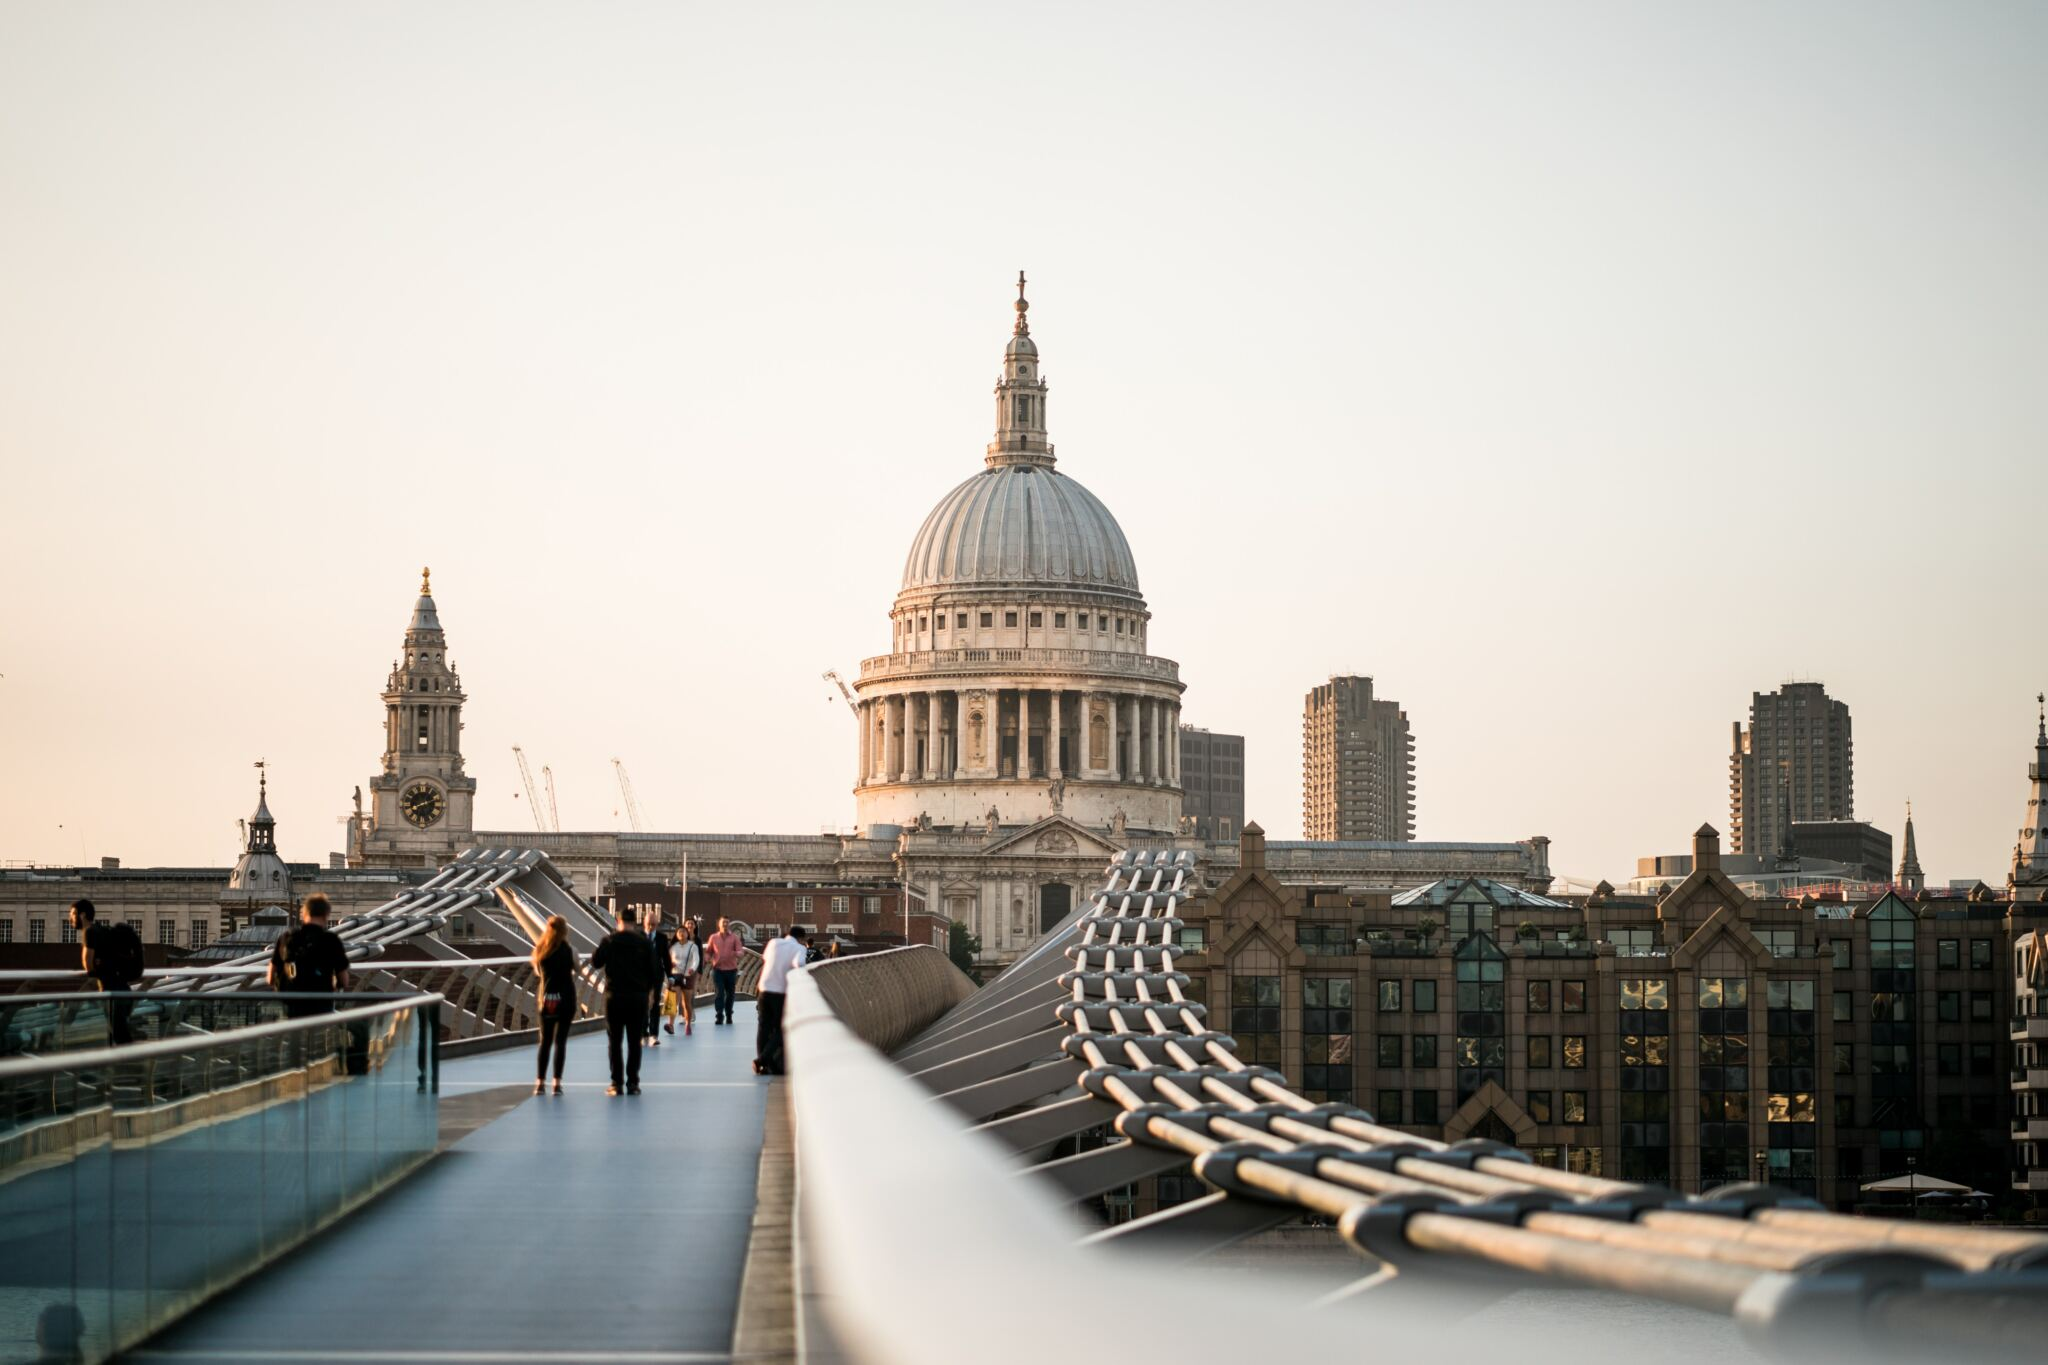 Lovely London | Photo courtesy of Jonathan Chng and Unsplash